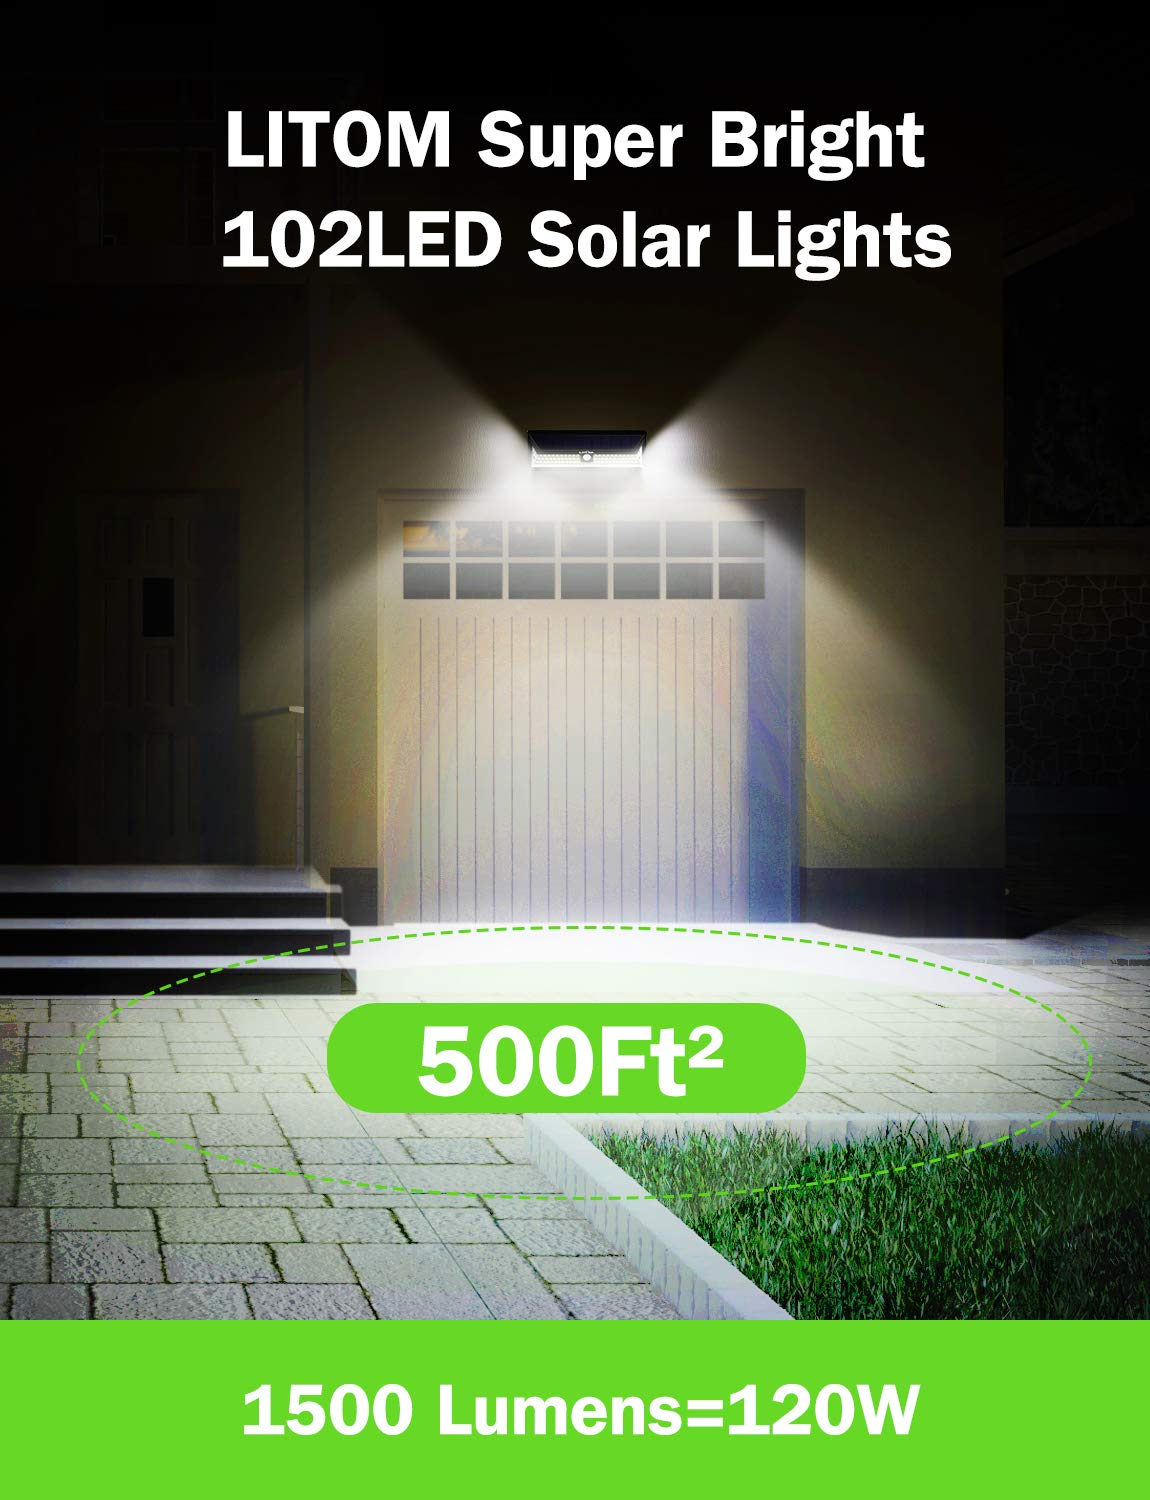 LITOM Enhanced 102 LED Super Bright Solar Lights Outdoor, Solar Motion Sensor Lights with 270 Wide Angle, IP65 Waterproof, Easy-to-Install Security Lights for Front Door, Yard, Garage, Deck